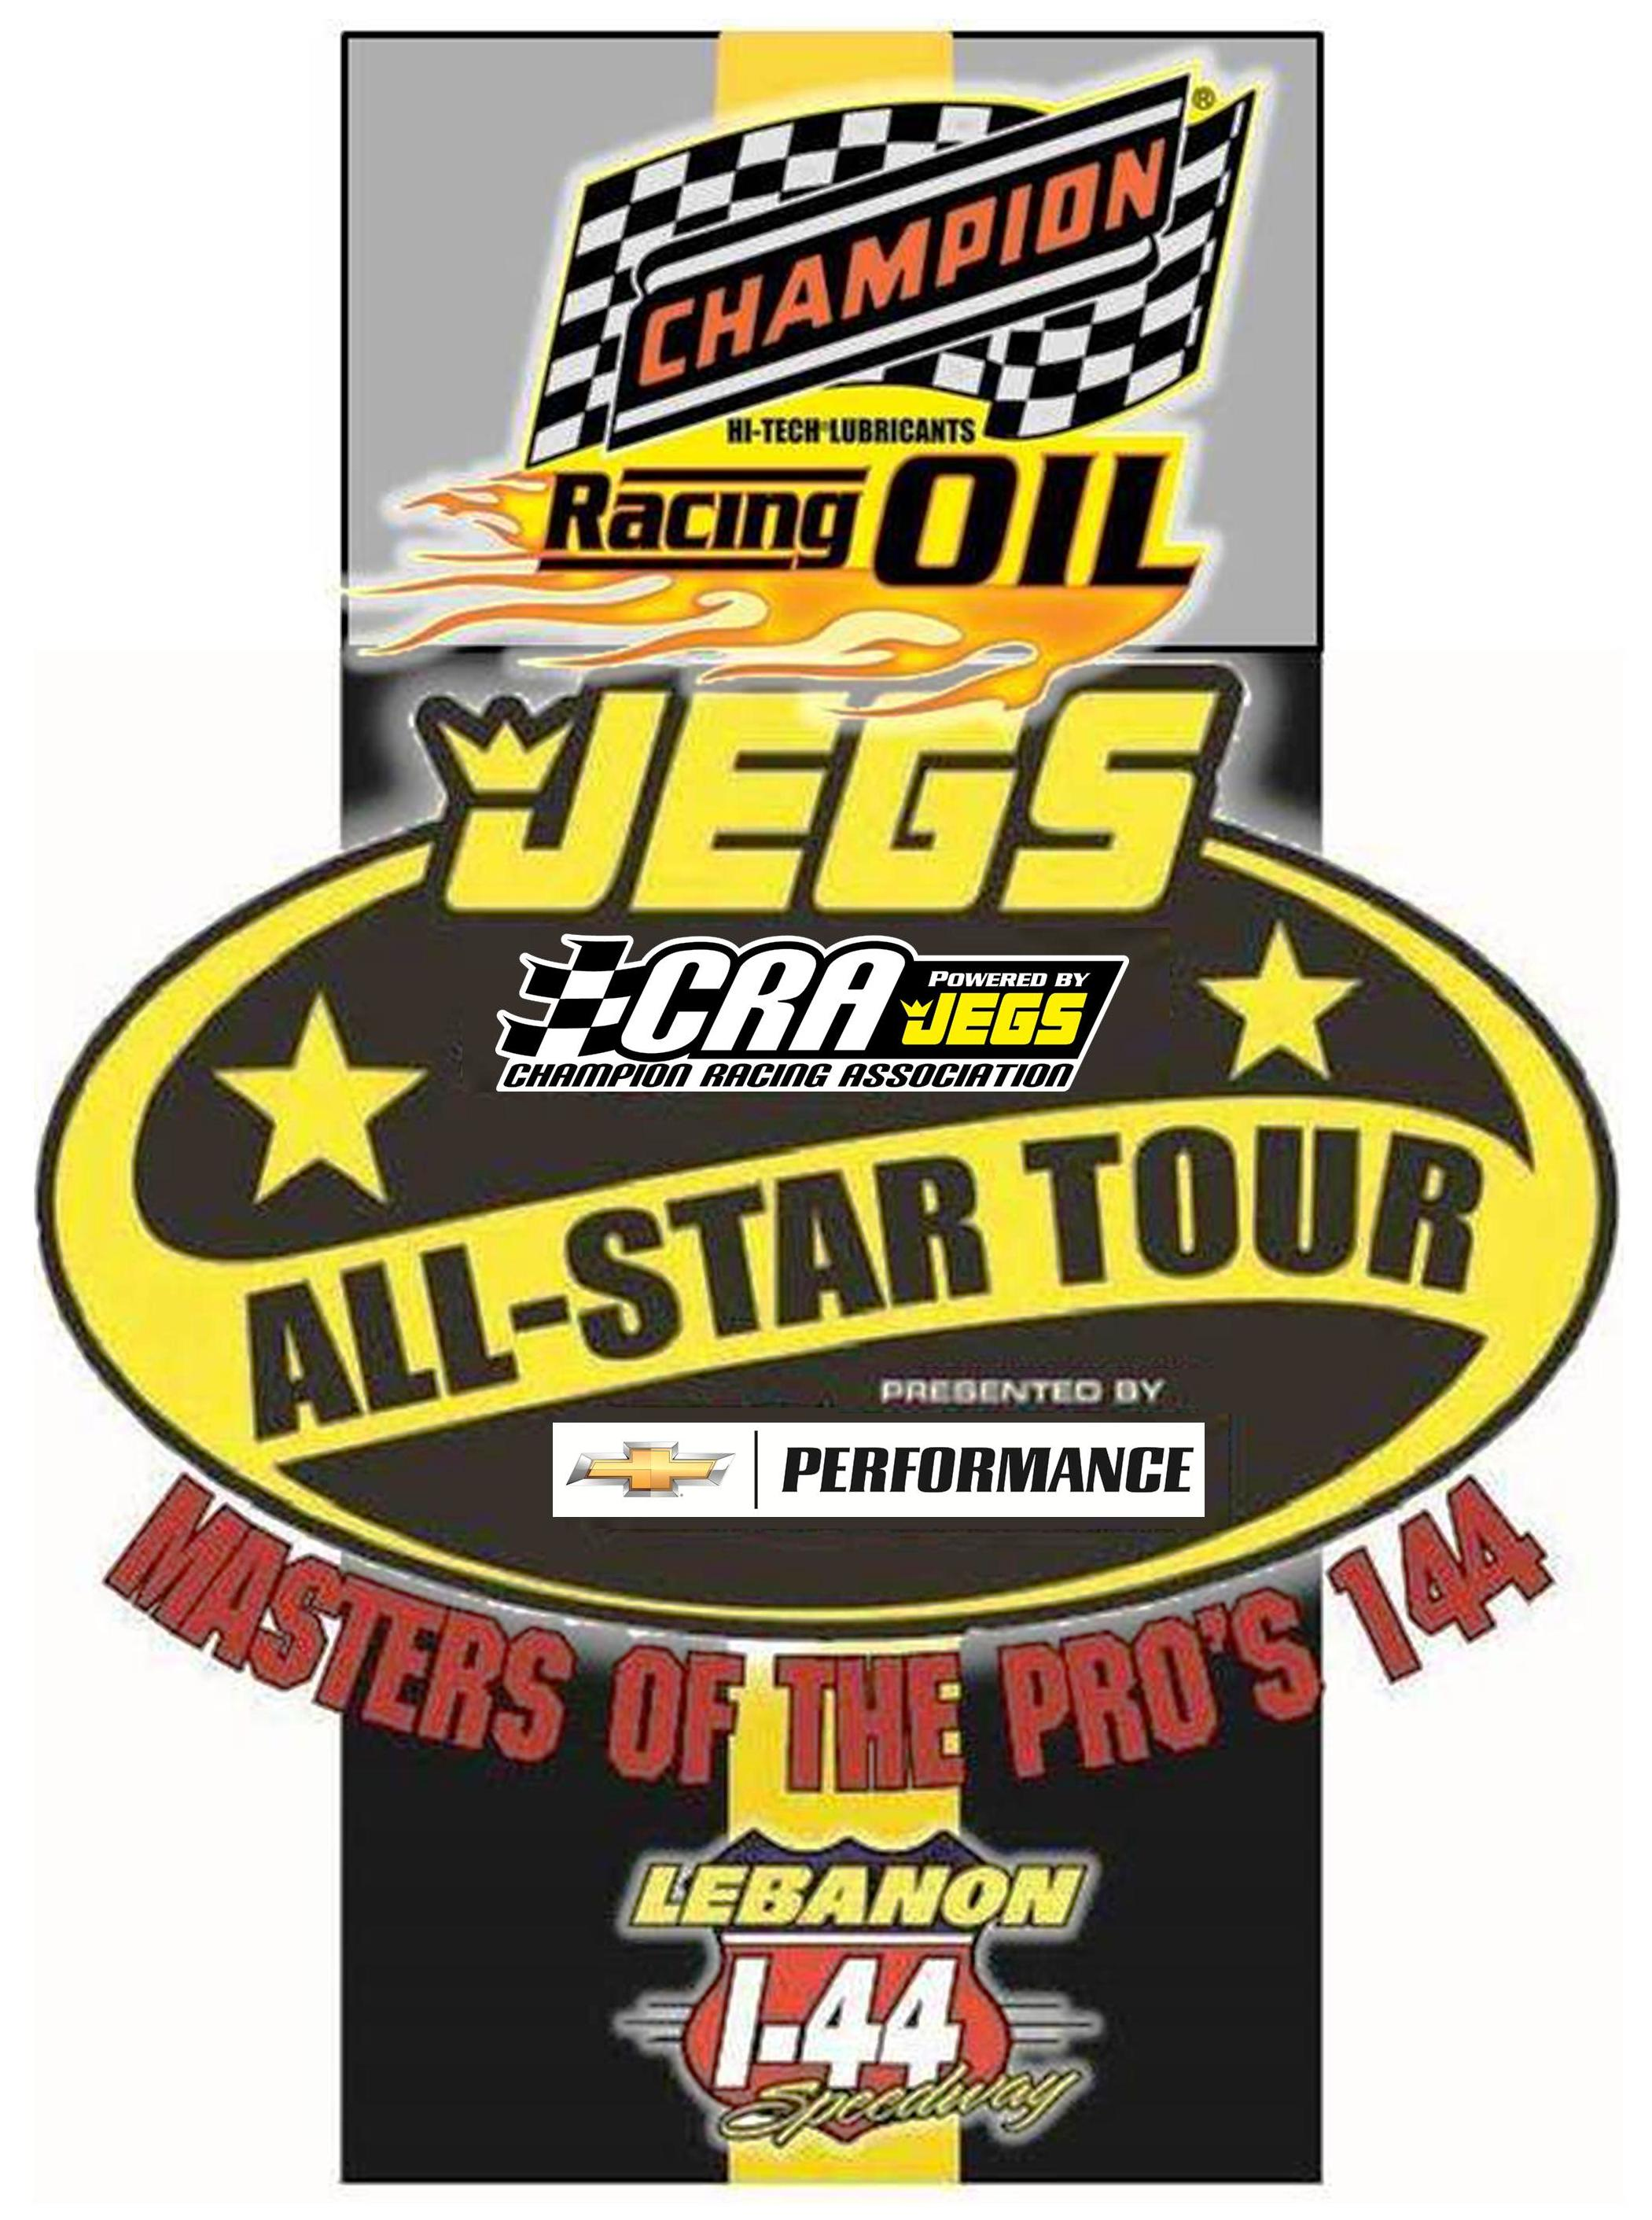 Champion Racing Oil Masters of the Pro s 144 Entries to Date